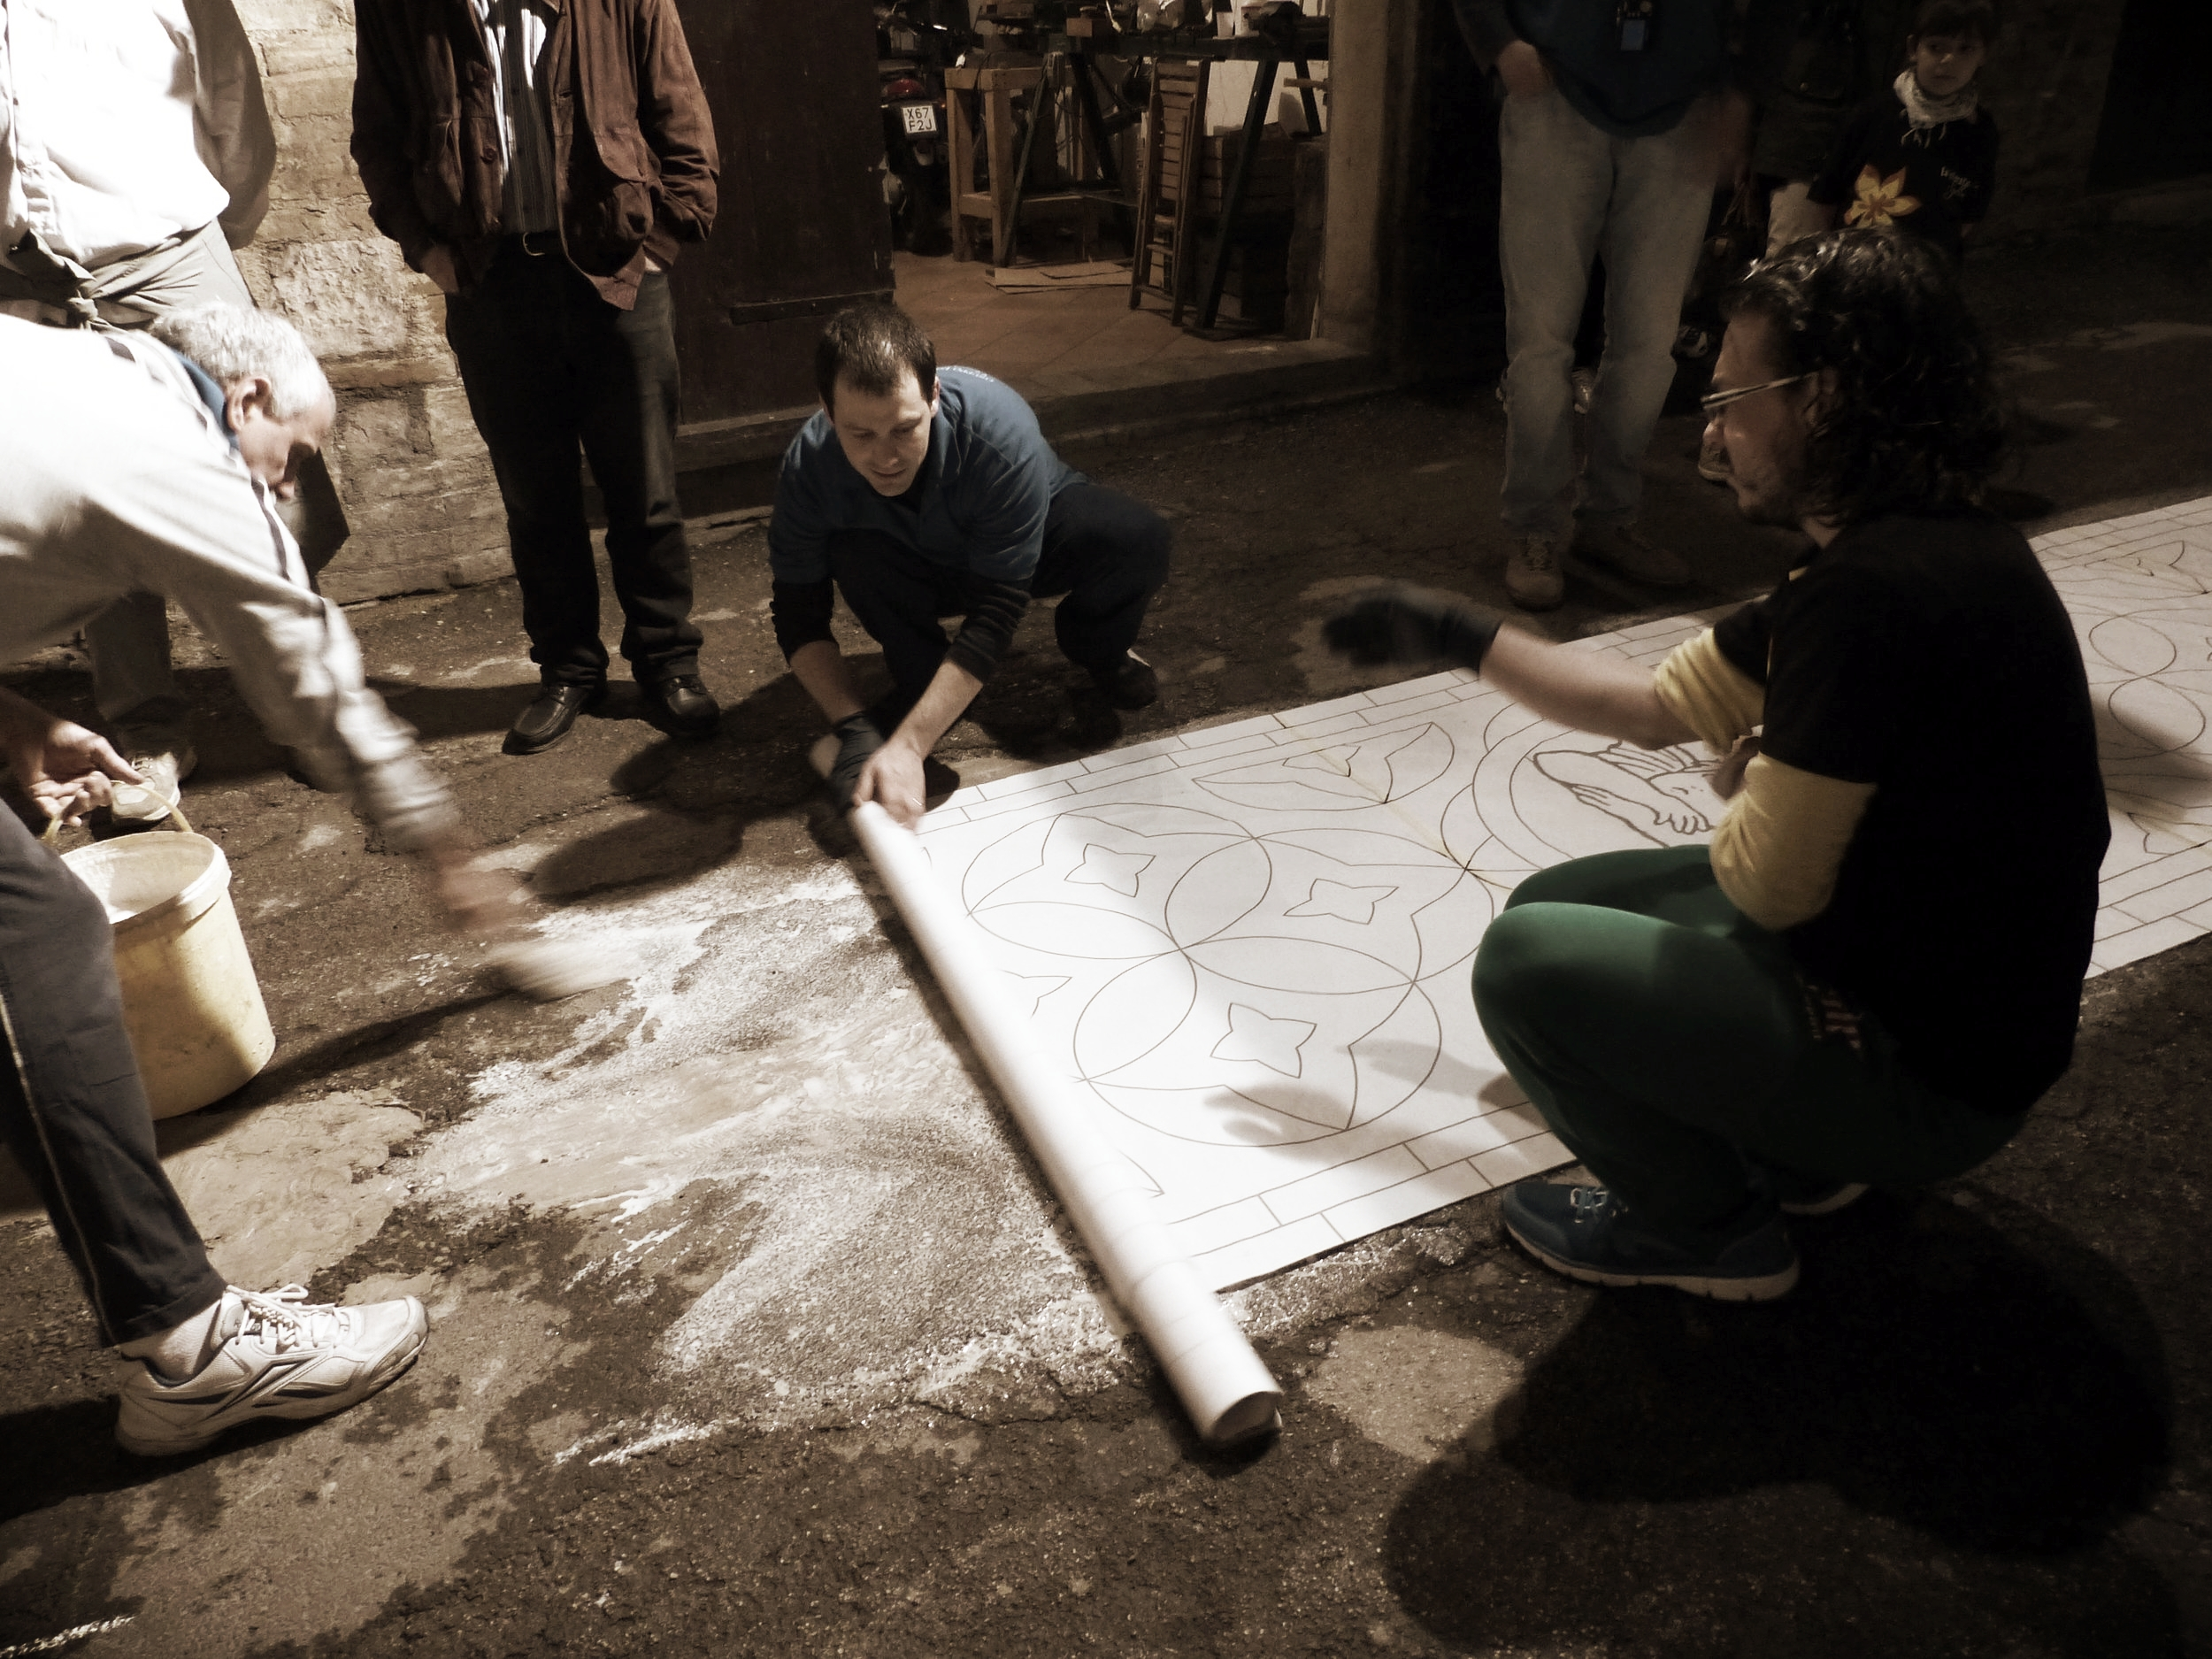 Template adhered to street for Infiorata in Spello, Umbria